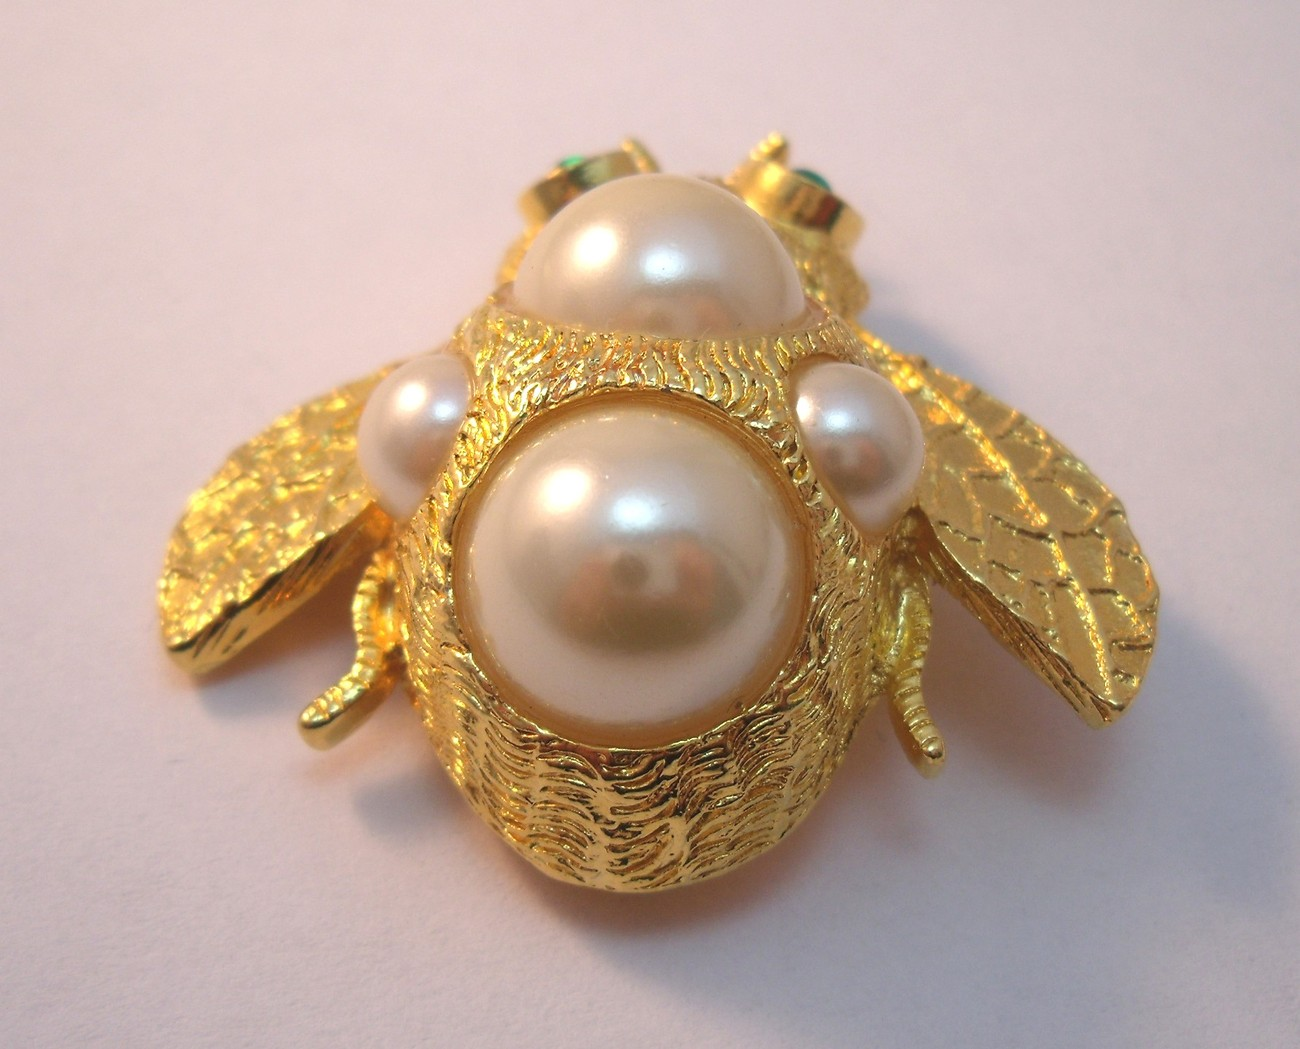 Ivana gold and pearl bumble  bee brooch.